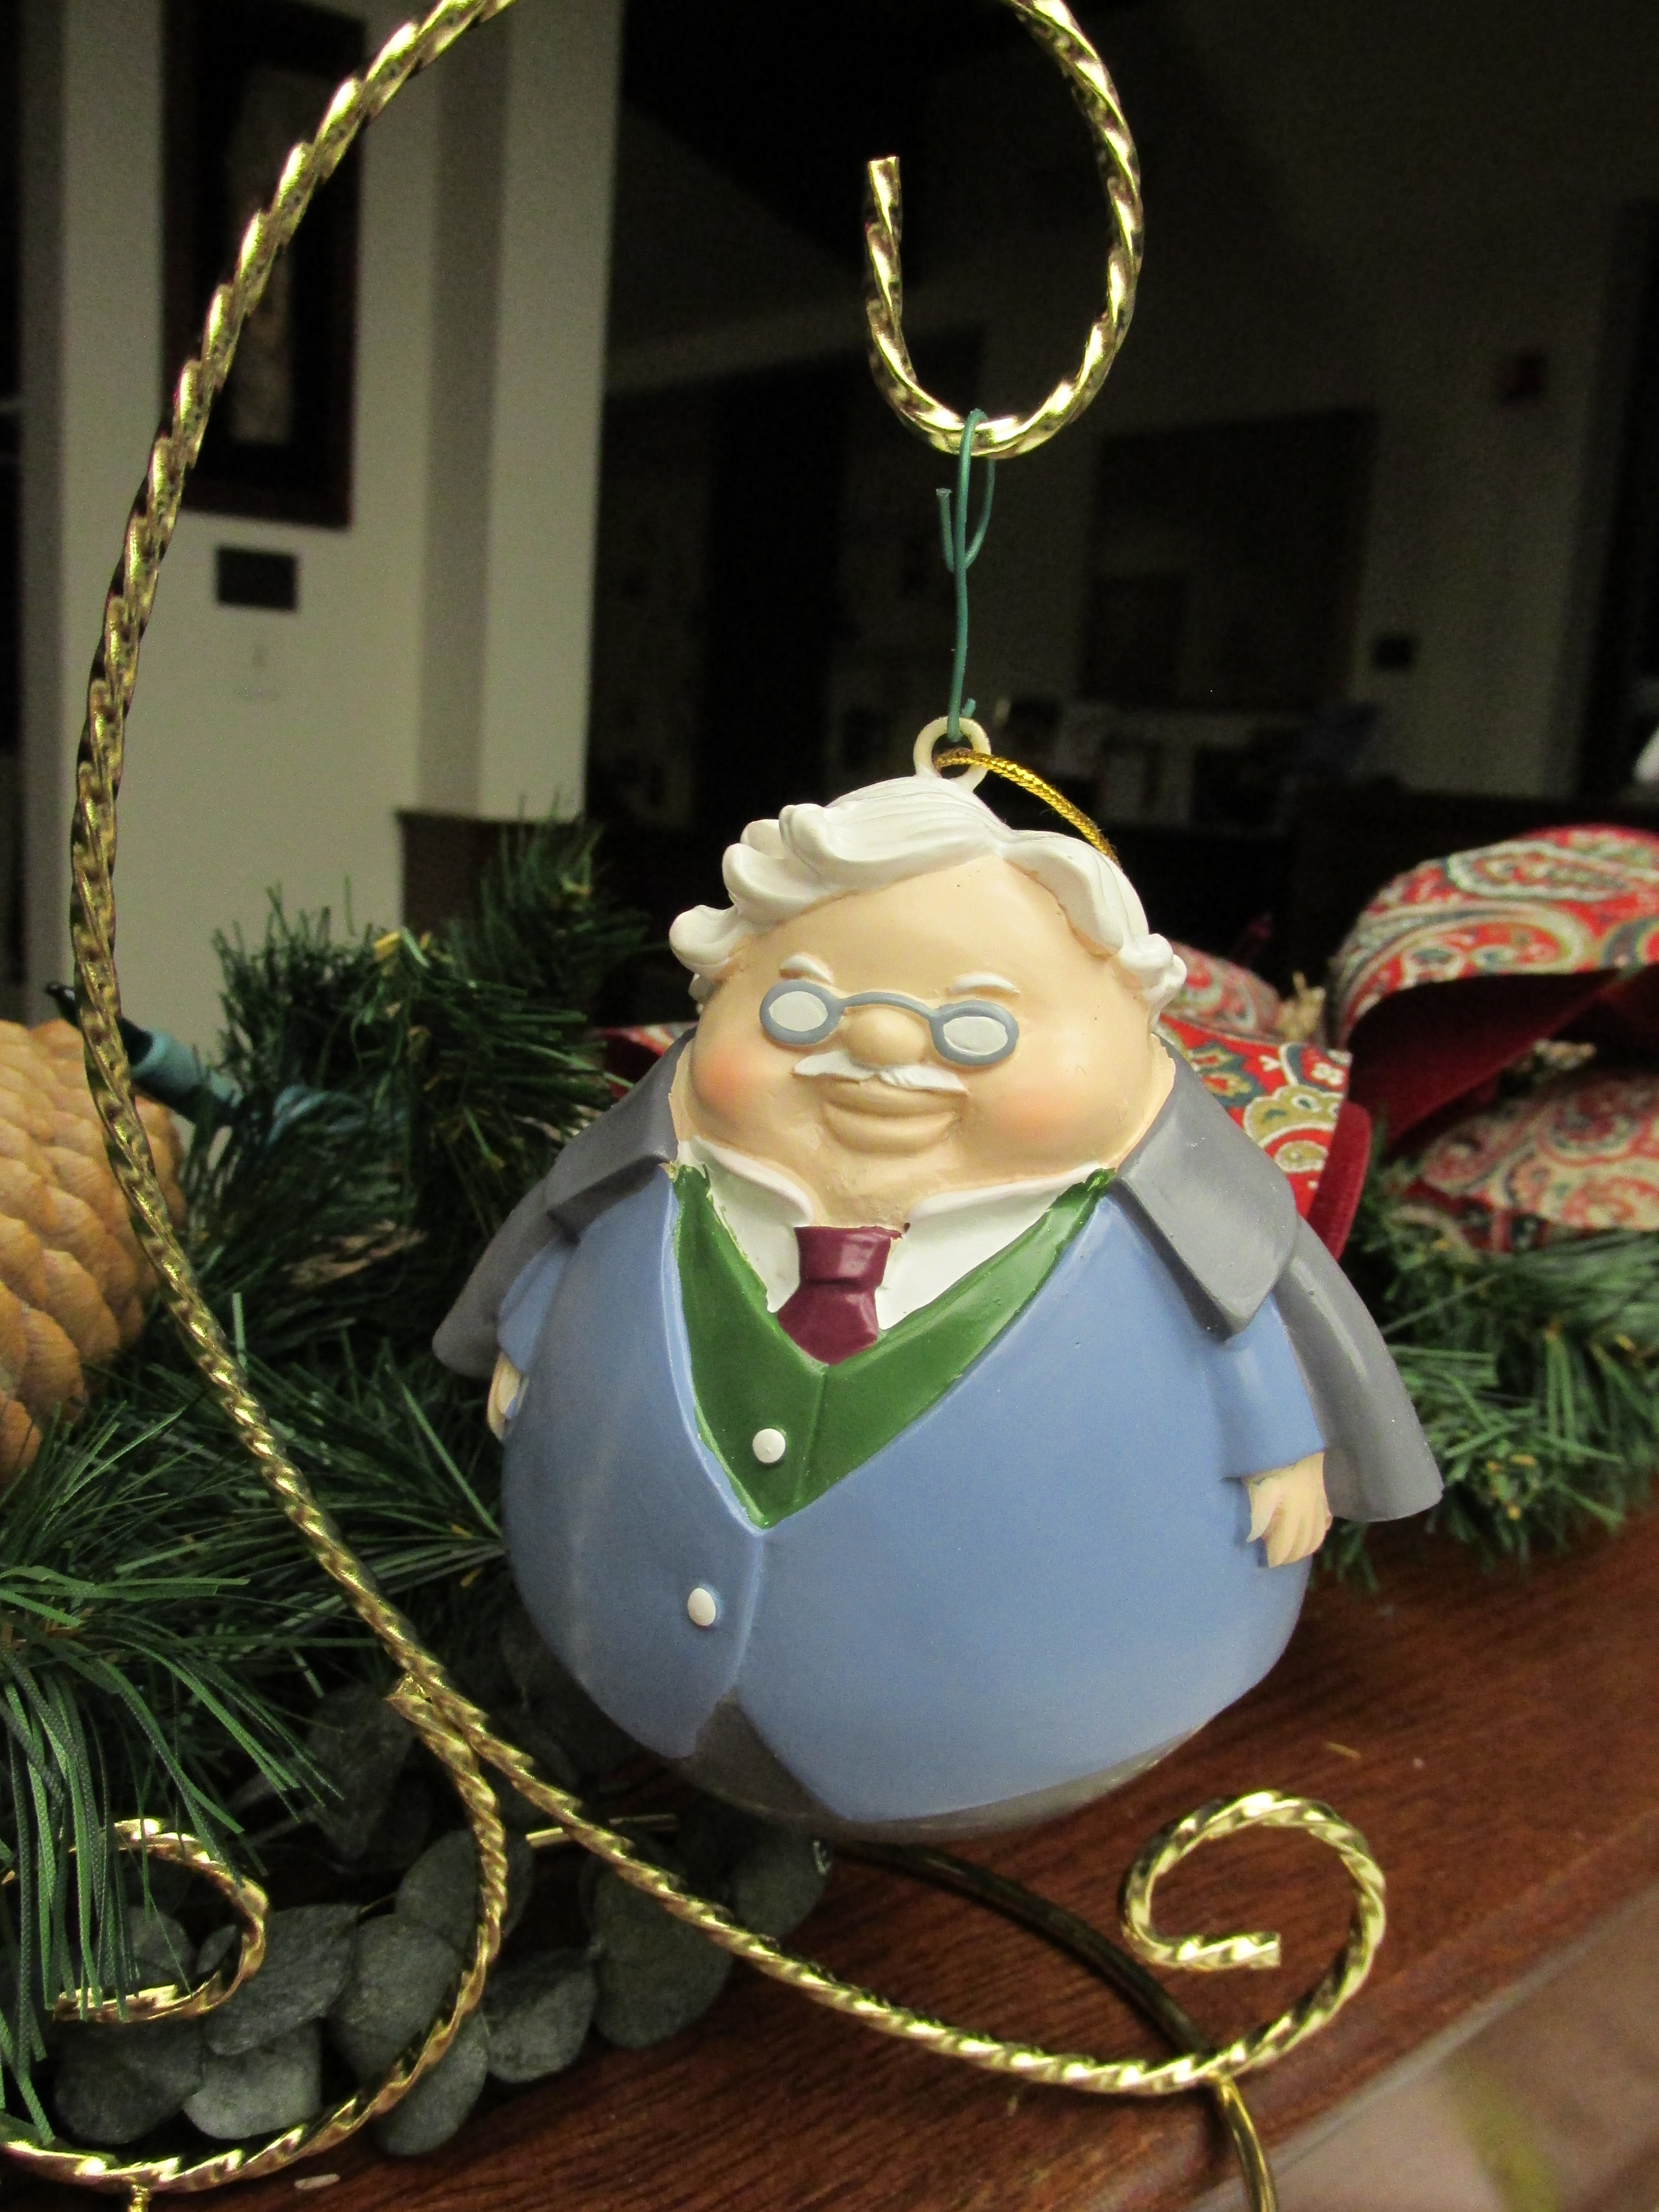 g k chesterton off the shelf this happy little g k chesterton christmas or nt just arrived in the wade center s shop you